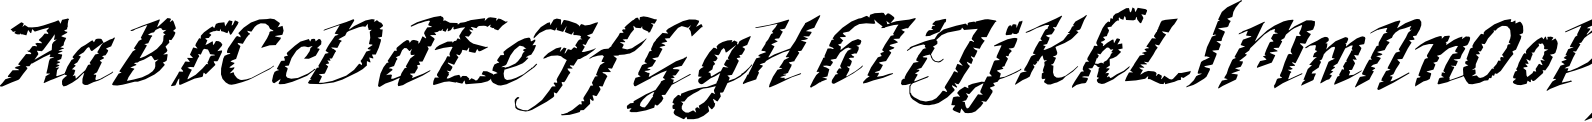 Appleseed Font